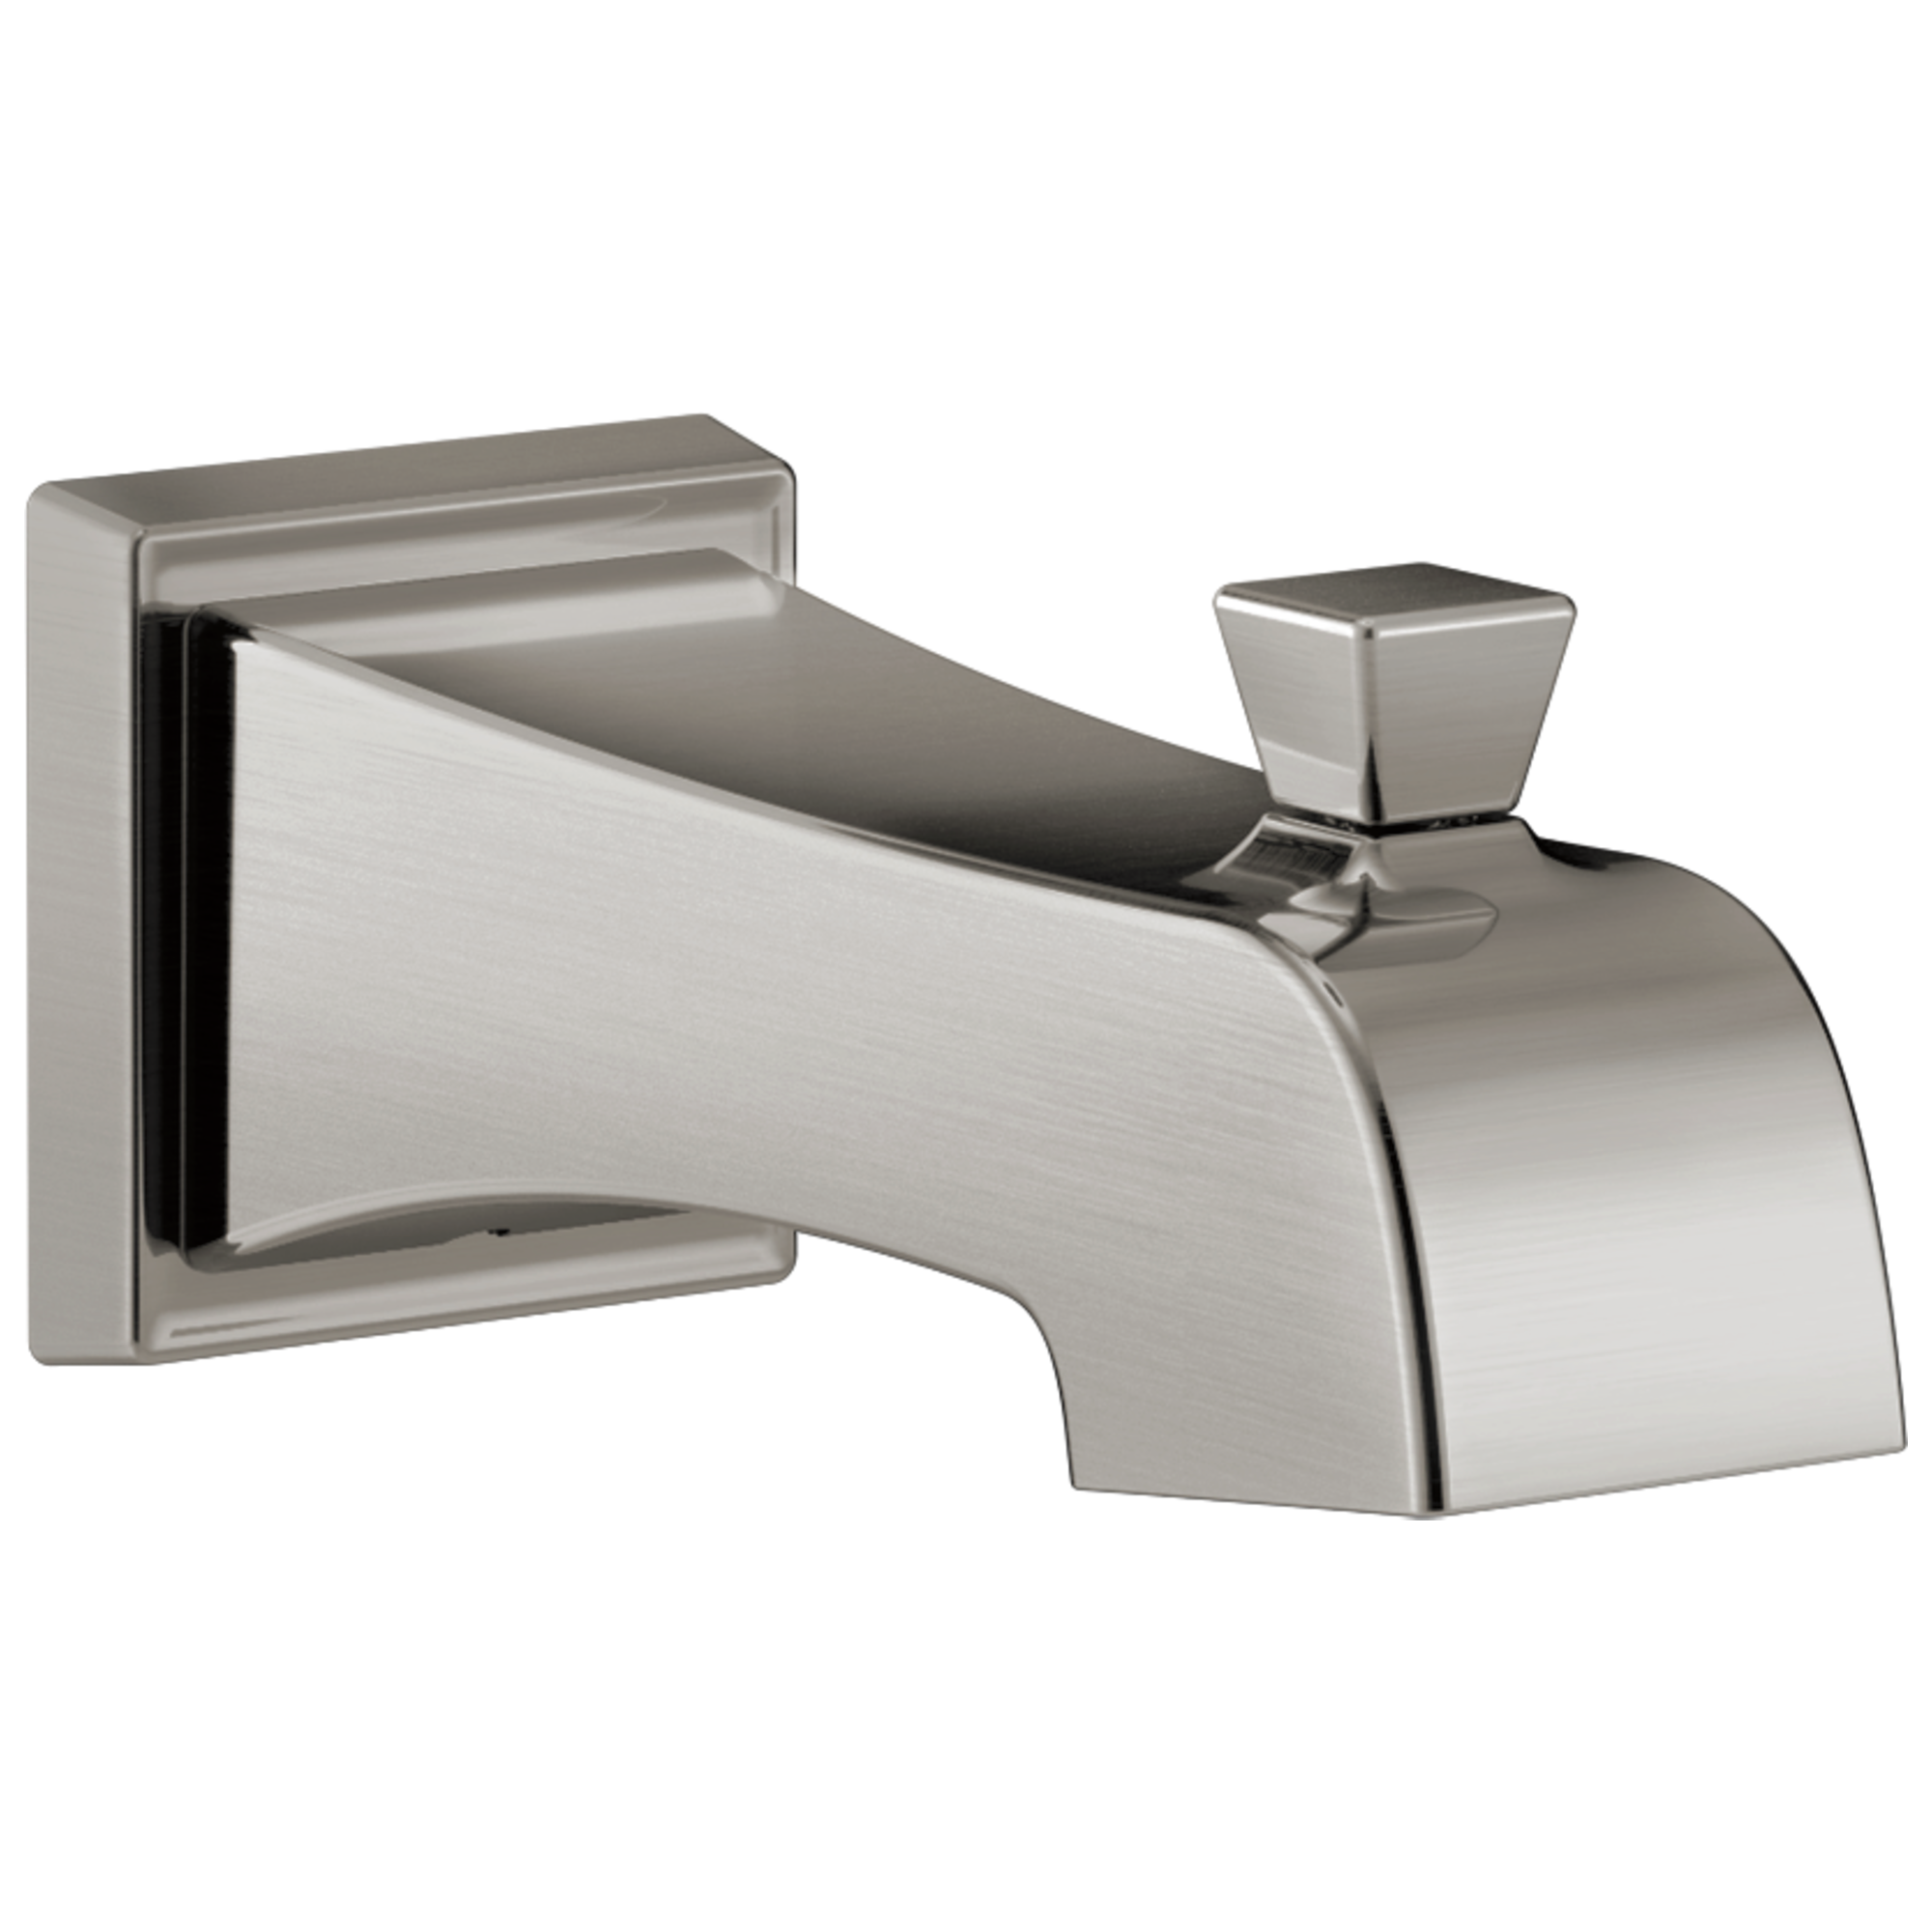 Delta Faucet Rp77091ss Tub Spout Pull Up Diverter Stainless Delta Faucets Faucet Tub